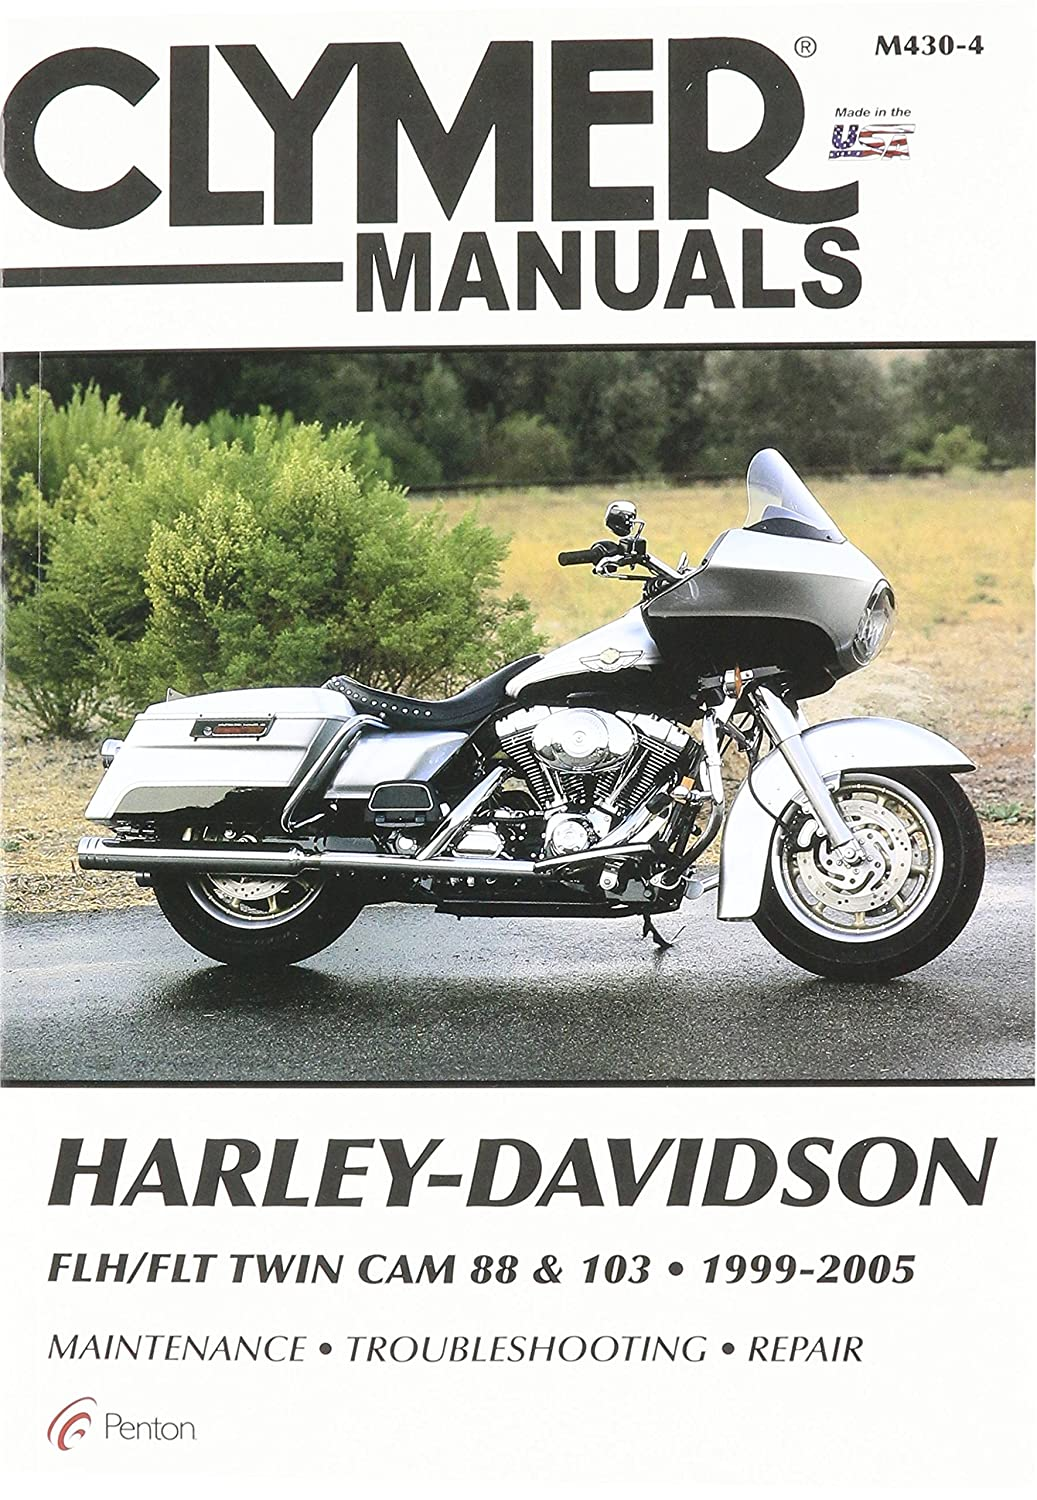 Amazon.com: Clymer Repair Manual for Harley FLH FLT Twin Cam 88 99-05:  Automotive